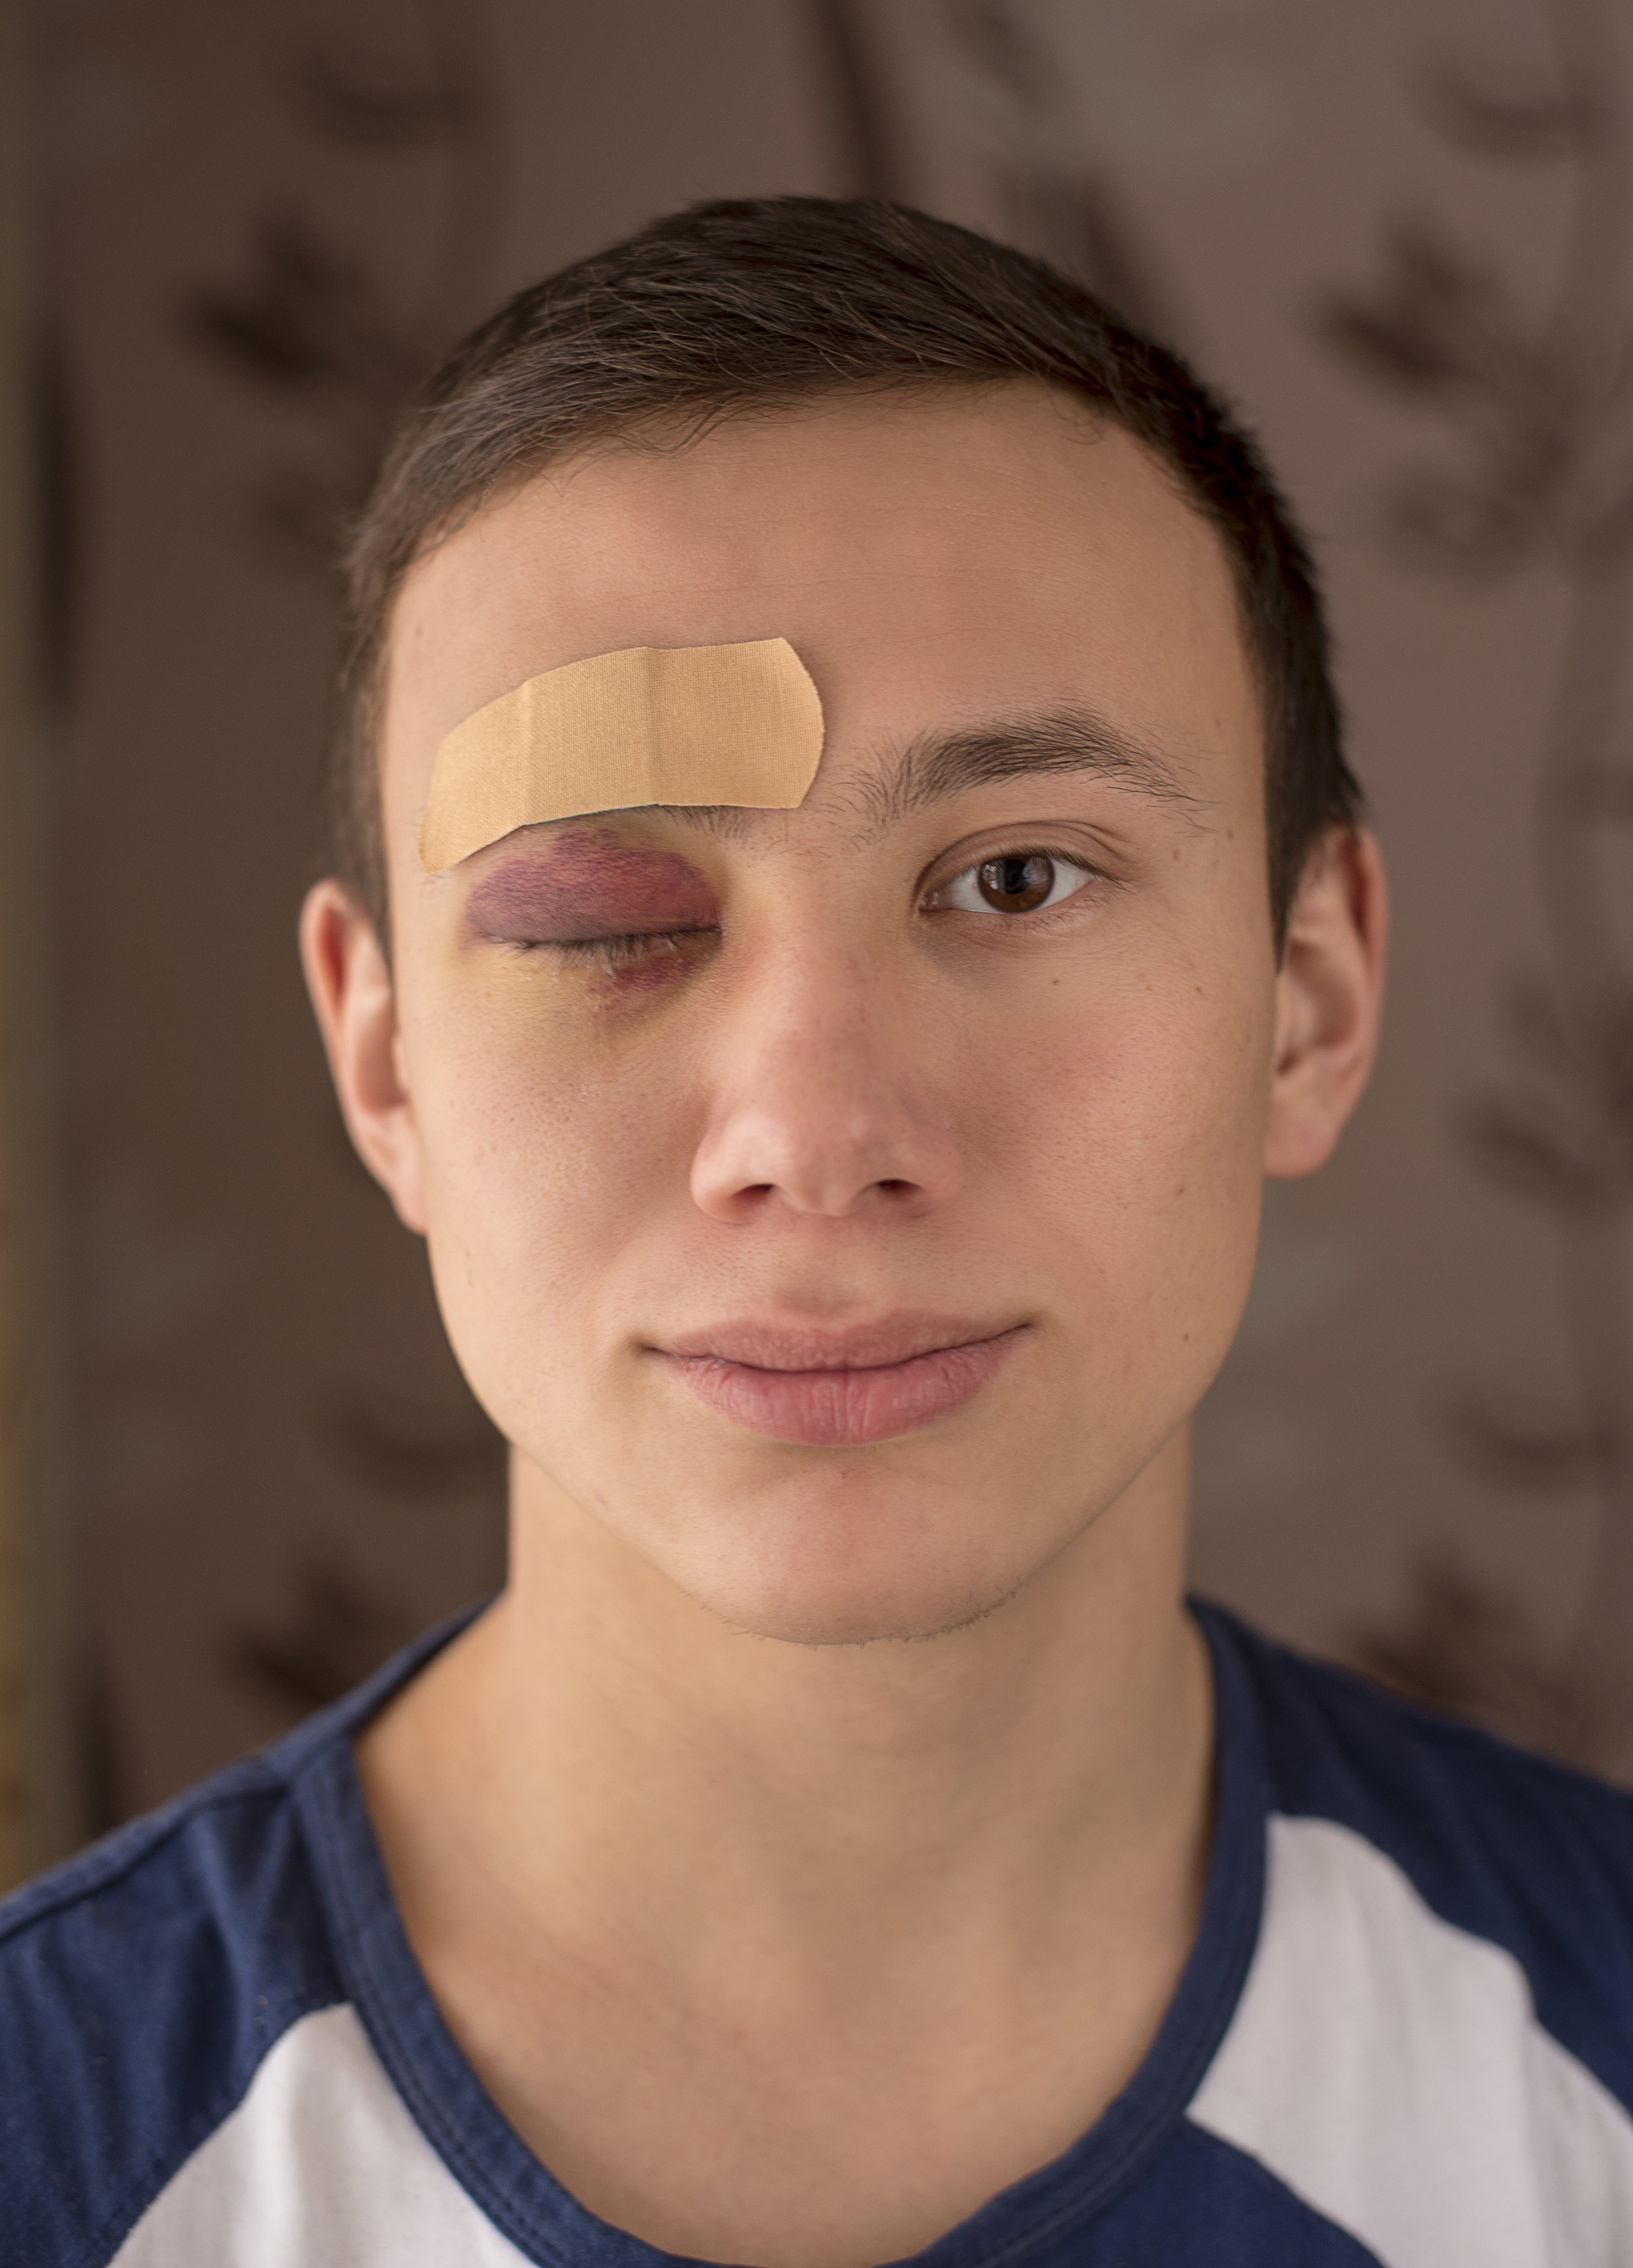 Head shot man with black eye and plaster